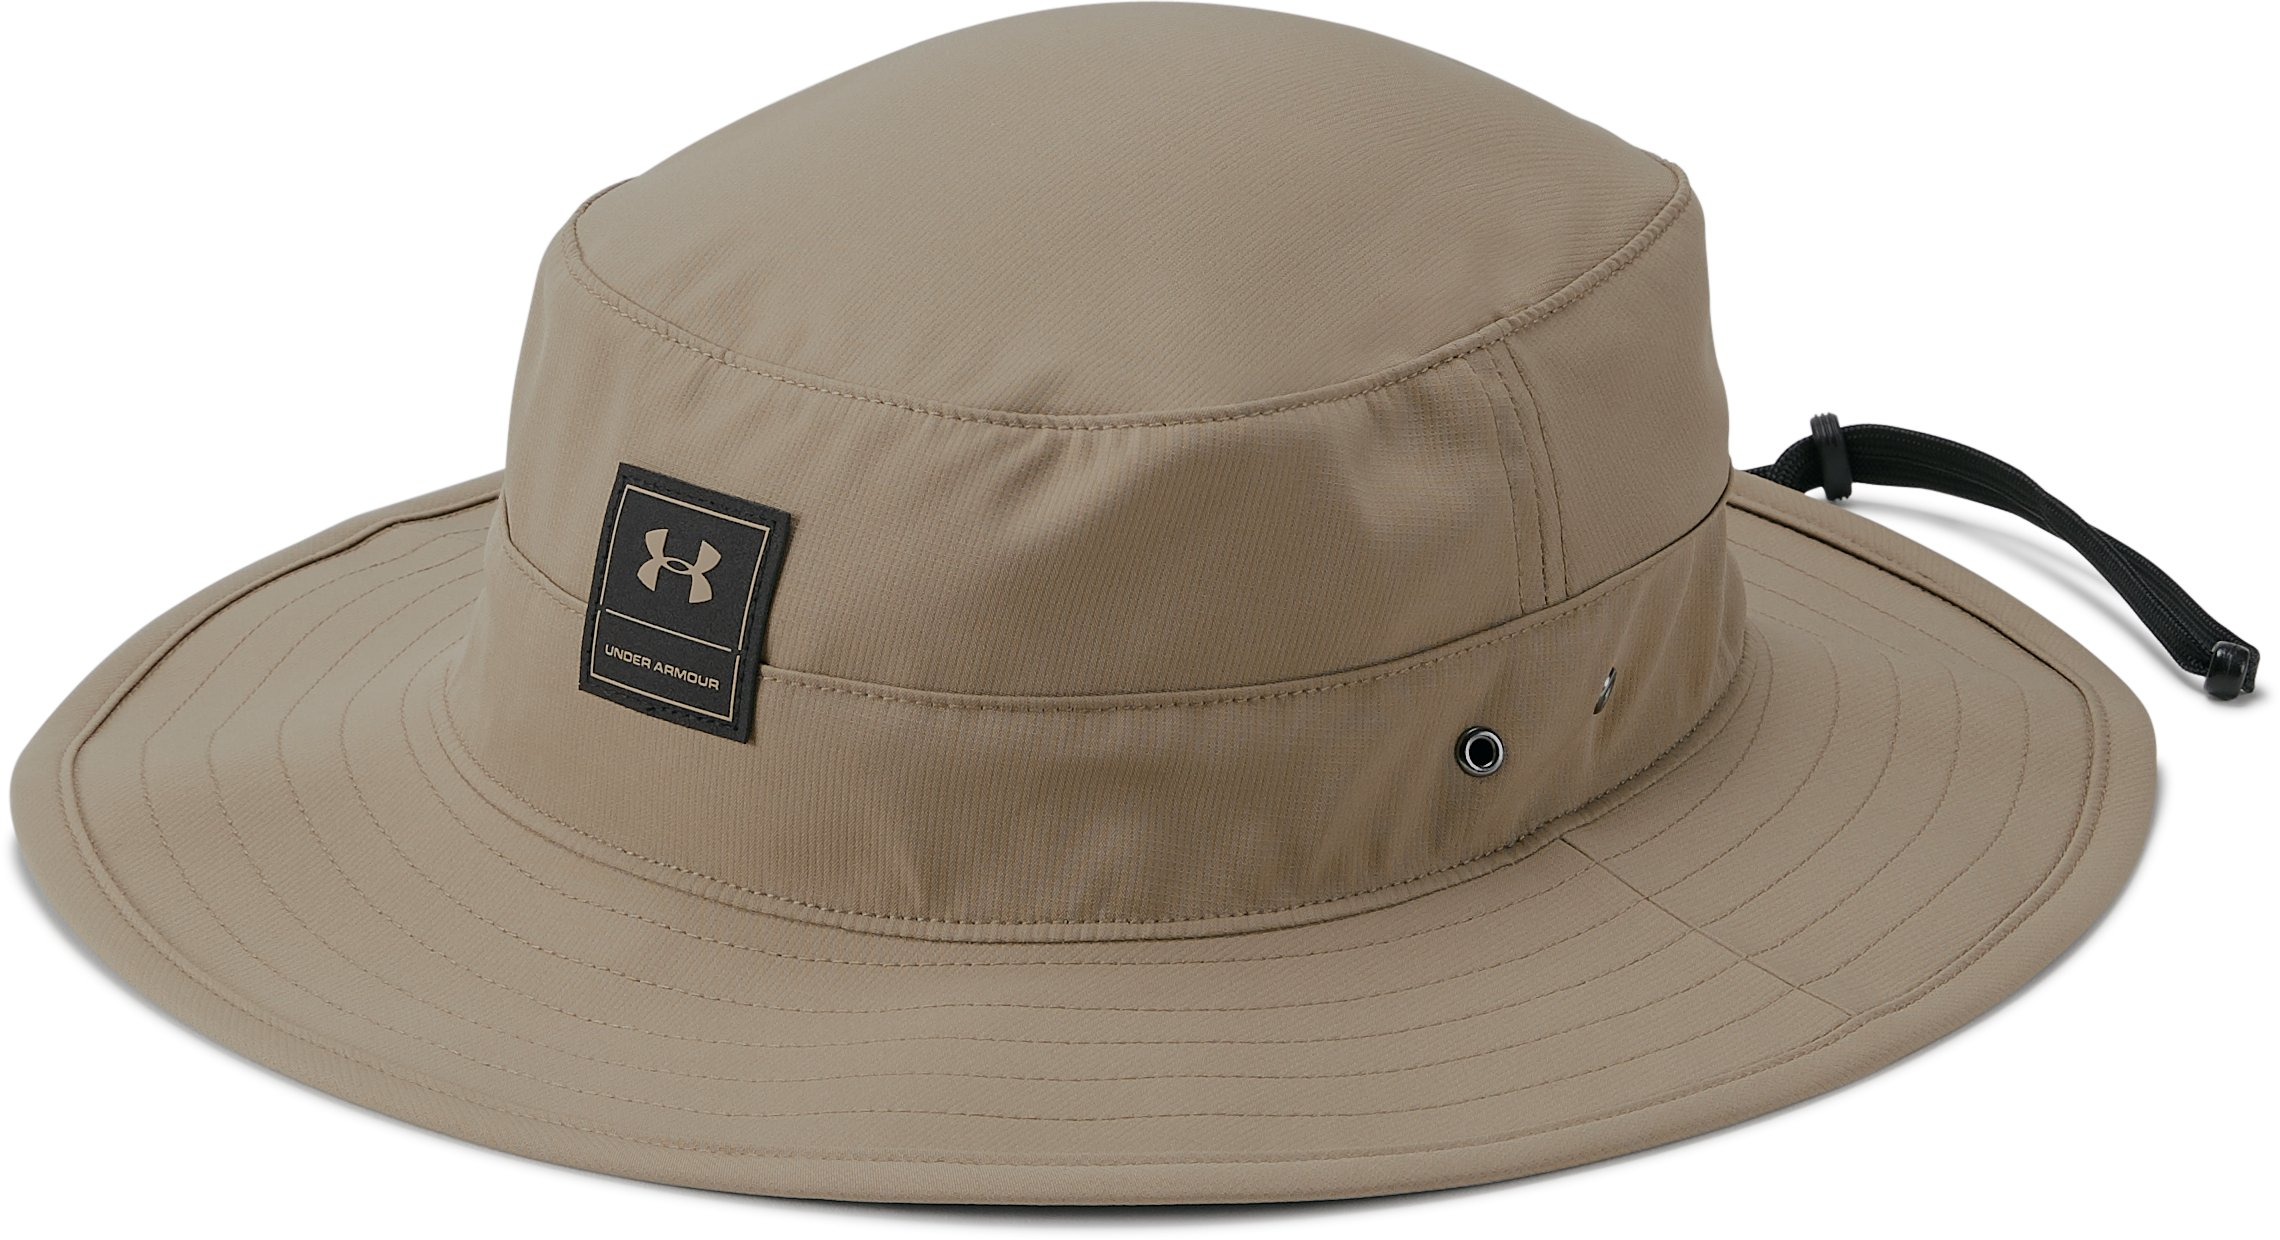 fishing bucket hats Men's UA Training Bucket Hat Comfortable to wear for long stretches and keeps the sun off you!...Other than the fact that it runs bigger than I expected, it's still a comfortable hat!...Great hat